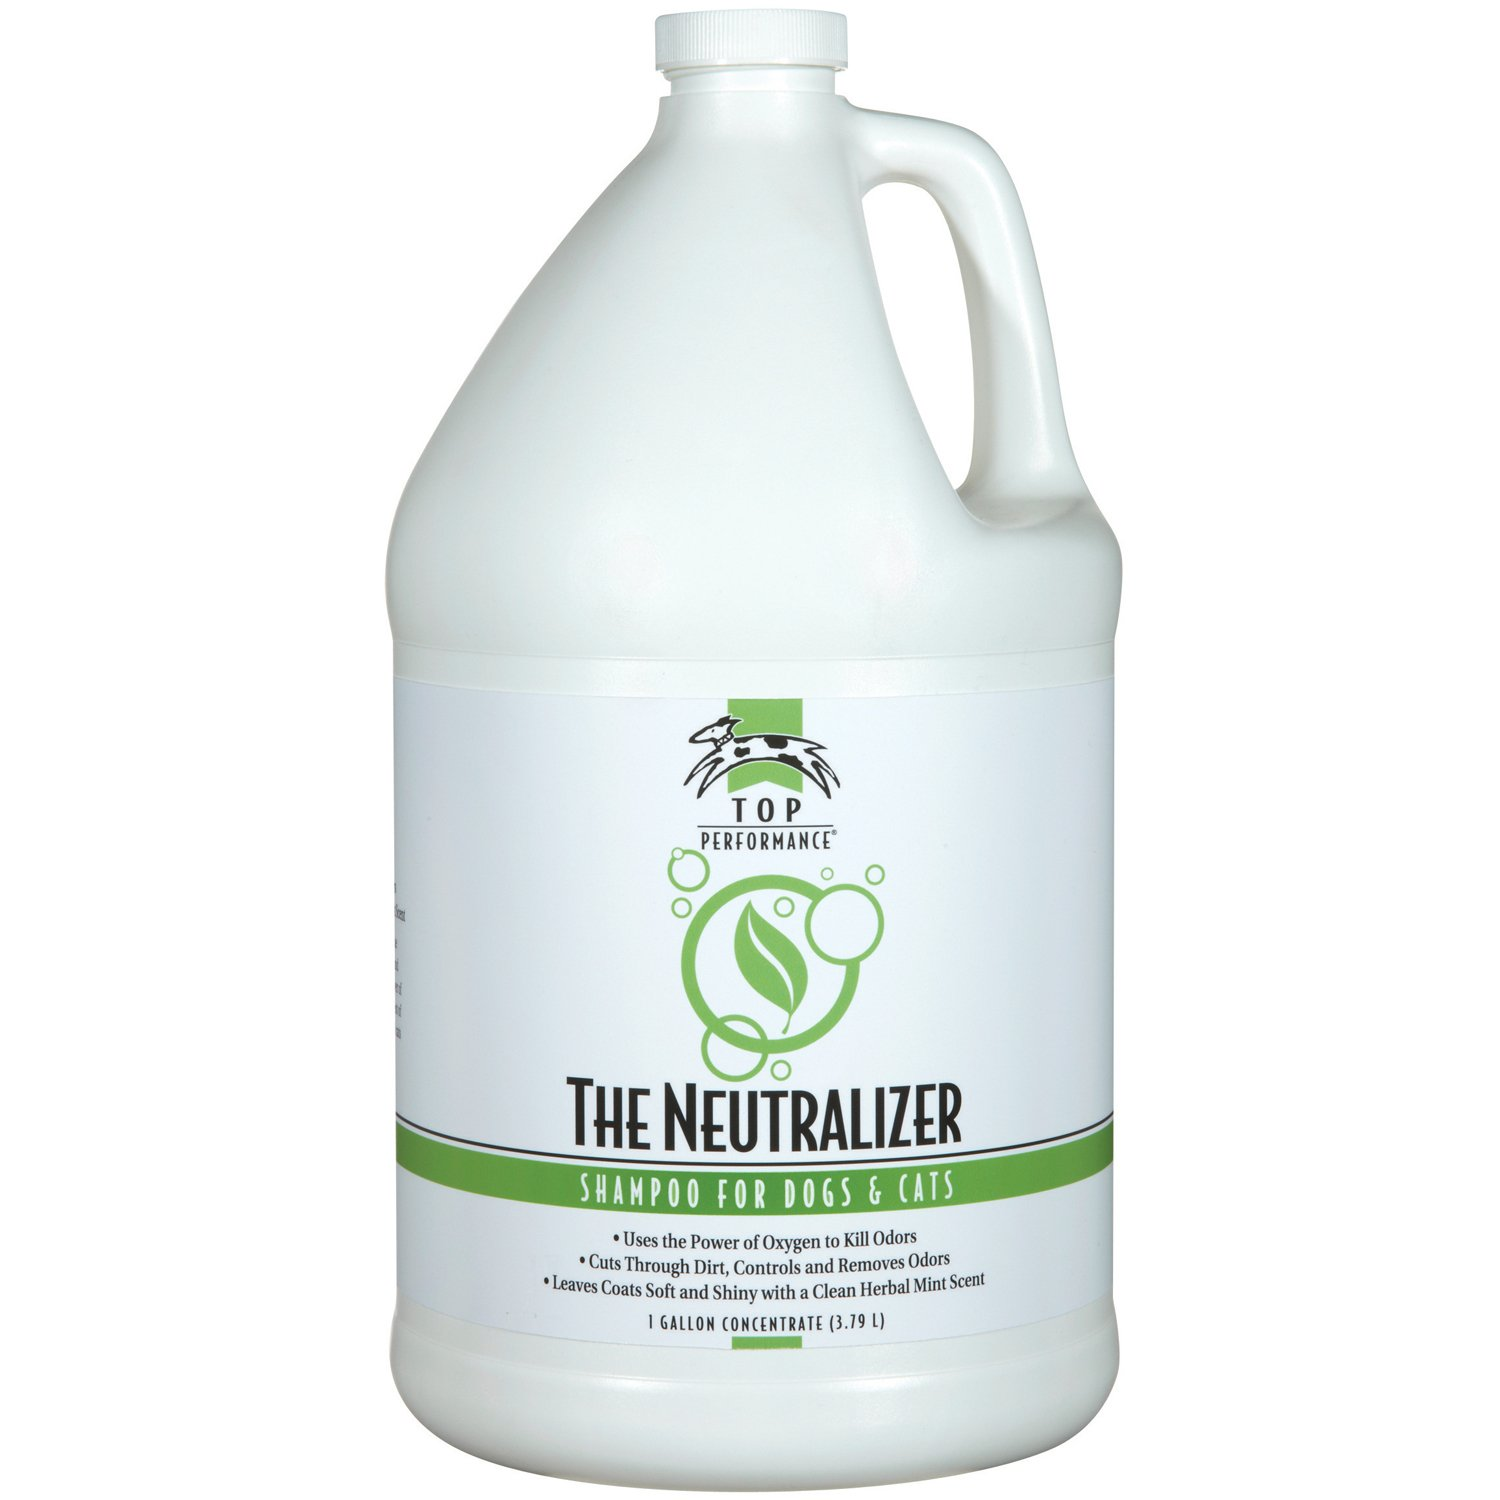 Gallon Top Performance The Neutralizer Dog and Cat Shampoo, 1-Gallon